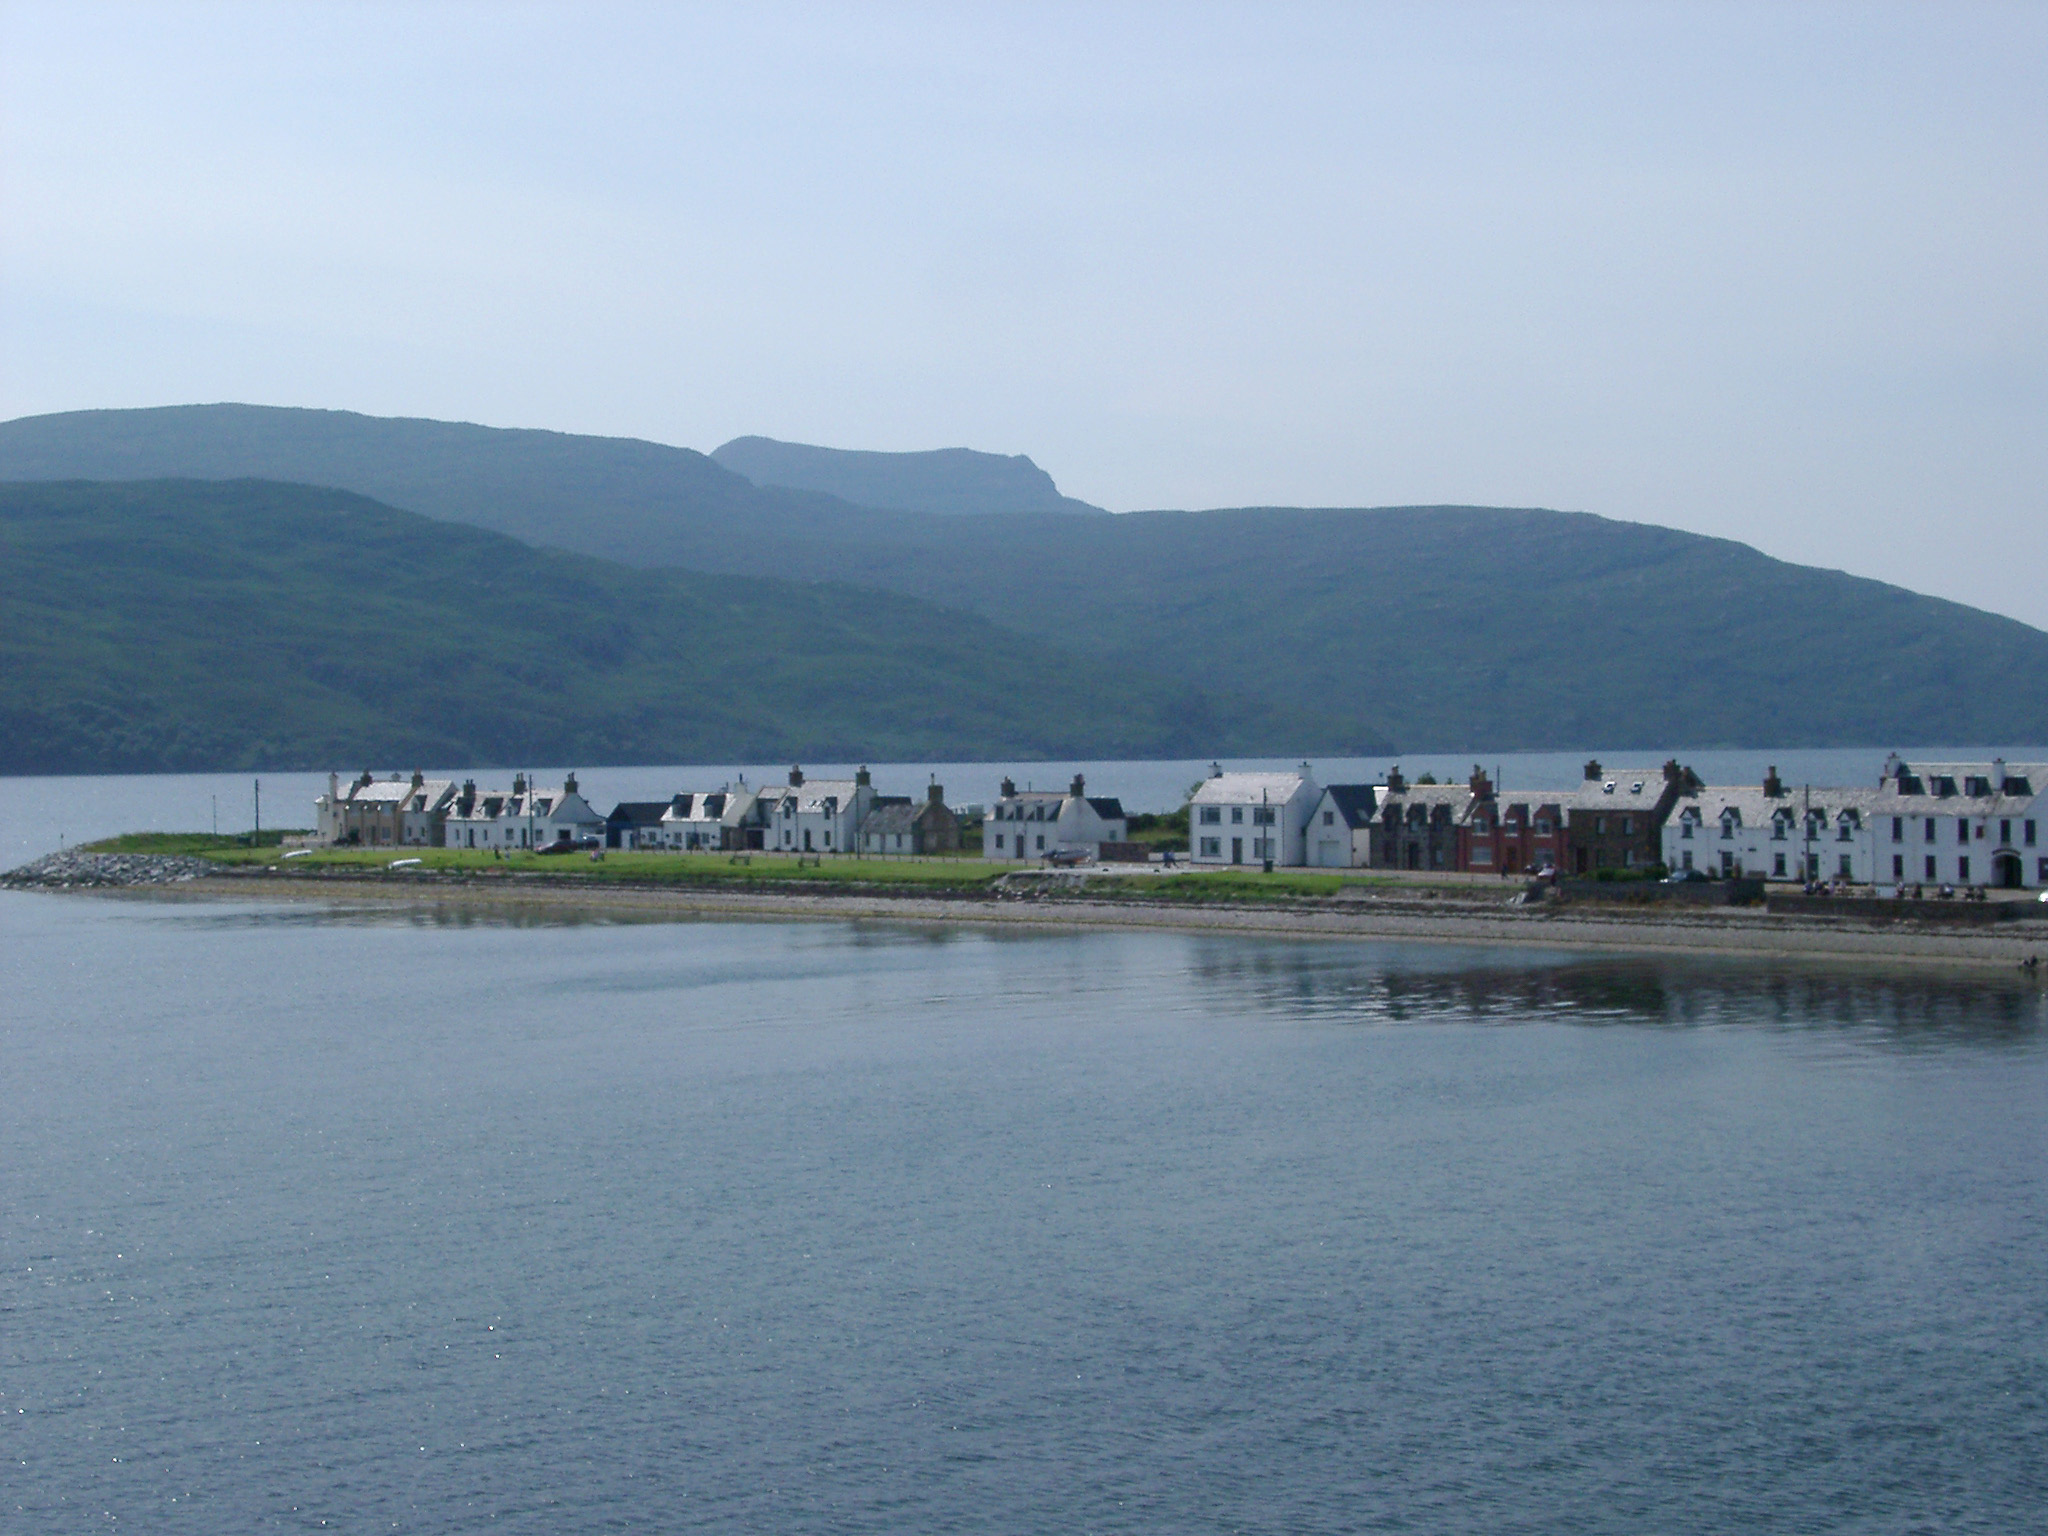 View of Ullapool on Shores of Loch Broom Overcast Day, Scottish Highlands, Scotland